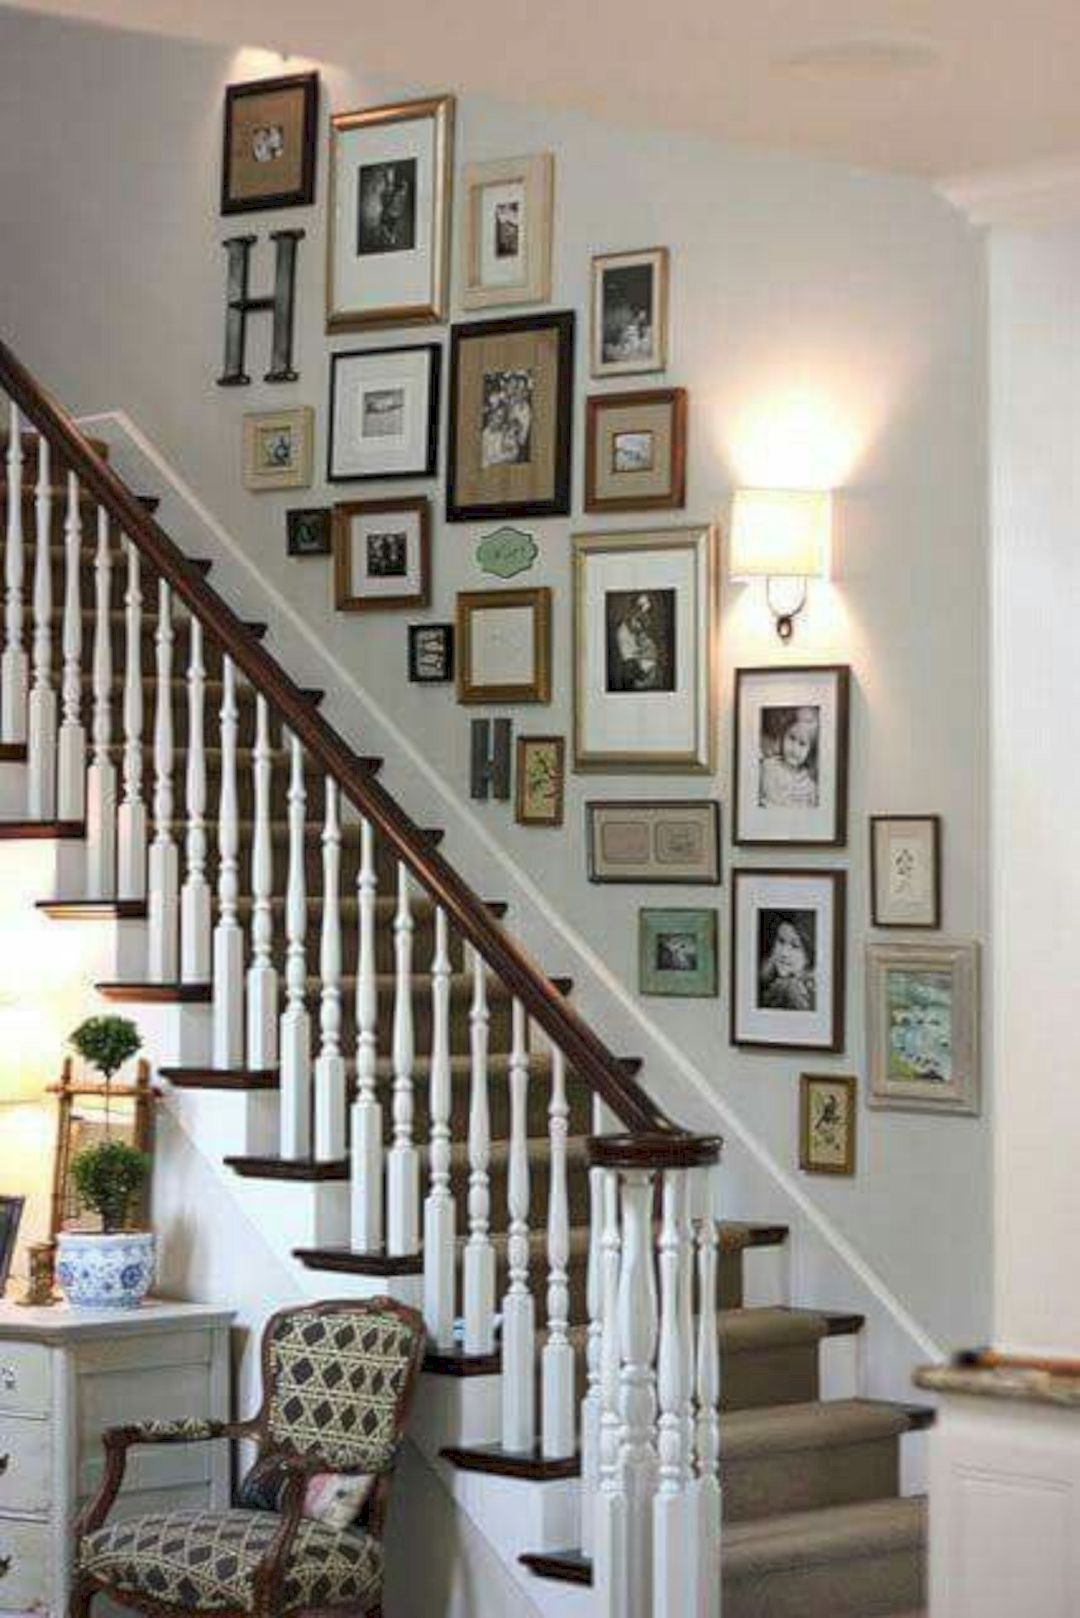 15 Awesome Staircase Lighting Ideas https://www.futuristarchitecture on home chimney ideas, home parking ideas, home clothing ideas, kitchen ideas, home fabrication shop ideas, home walls ideas, home paving ideas, home ceilings ideas, small home library ideas, backyard deck with gazebo ideas, home signage ideas, home carport ideas, home furnishings ideas, home signs ideas, home backlight ideas, home theater ideas, home garden landscaping ideas, home luxury house design, home crystal chandelier, home decor ideas,